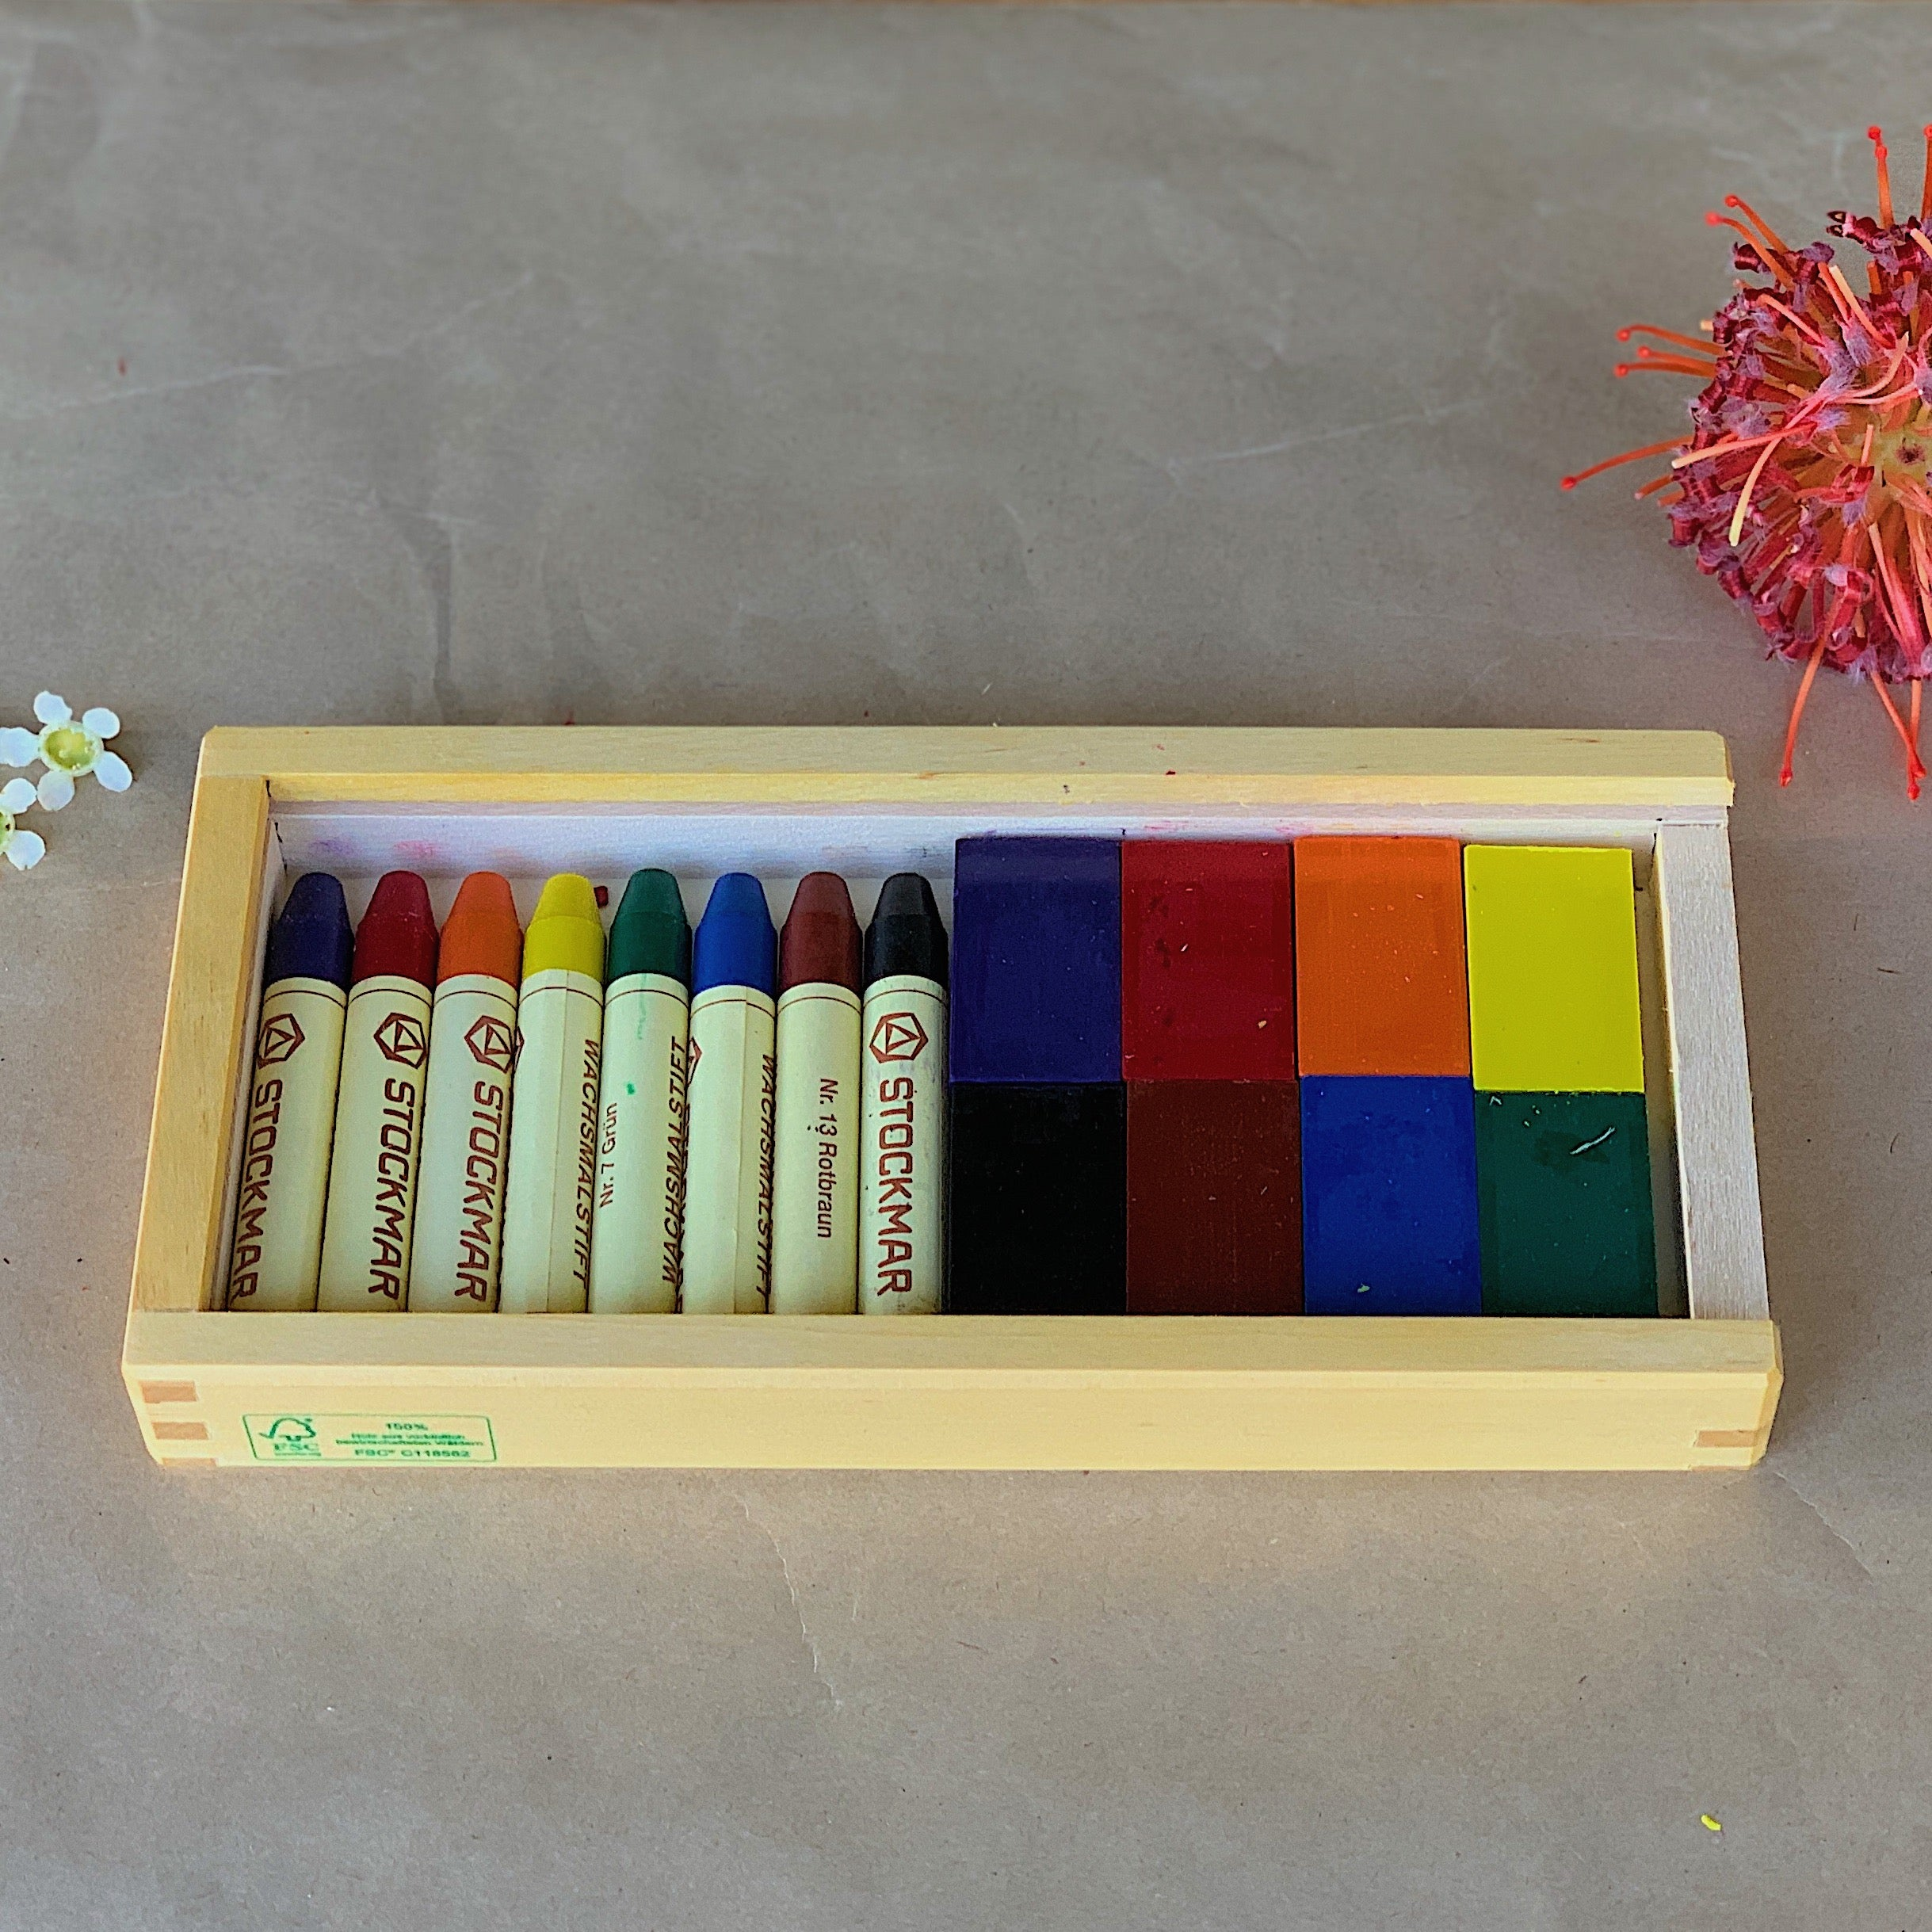 STOCKMAR | Pure Beeswax Crayons | 8 Blocks & 8 Sticks In Wooden Box